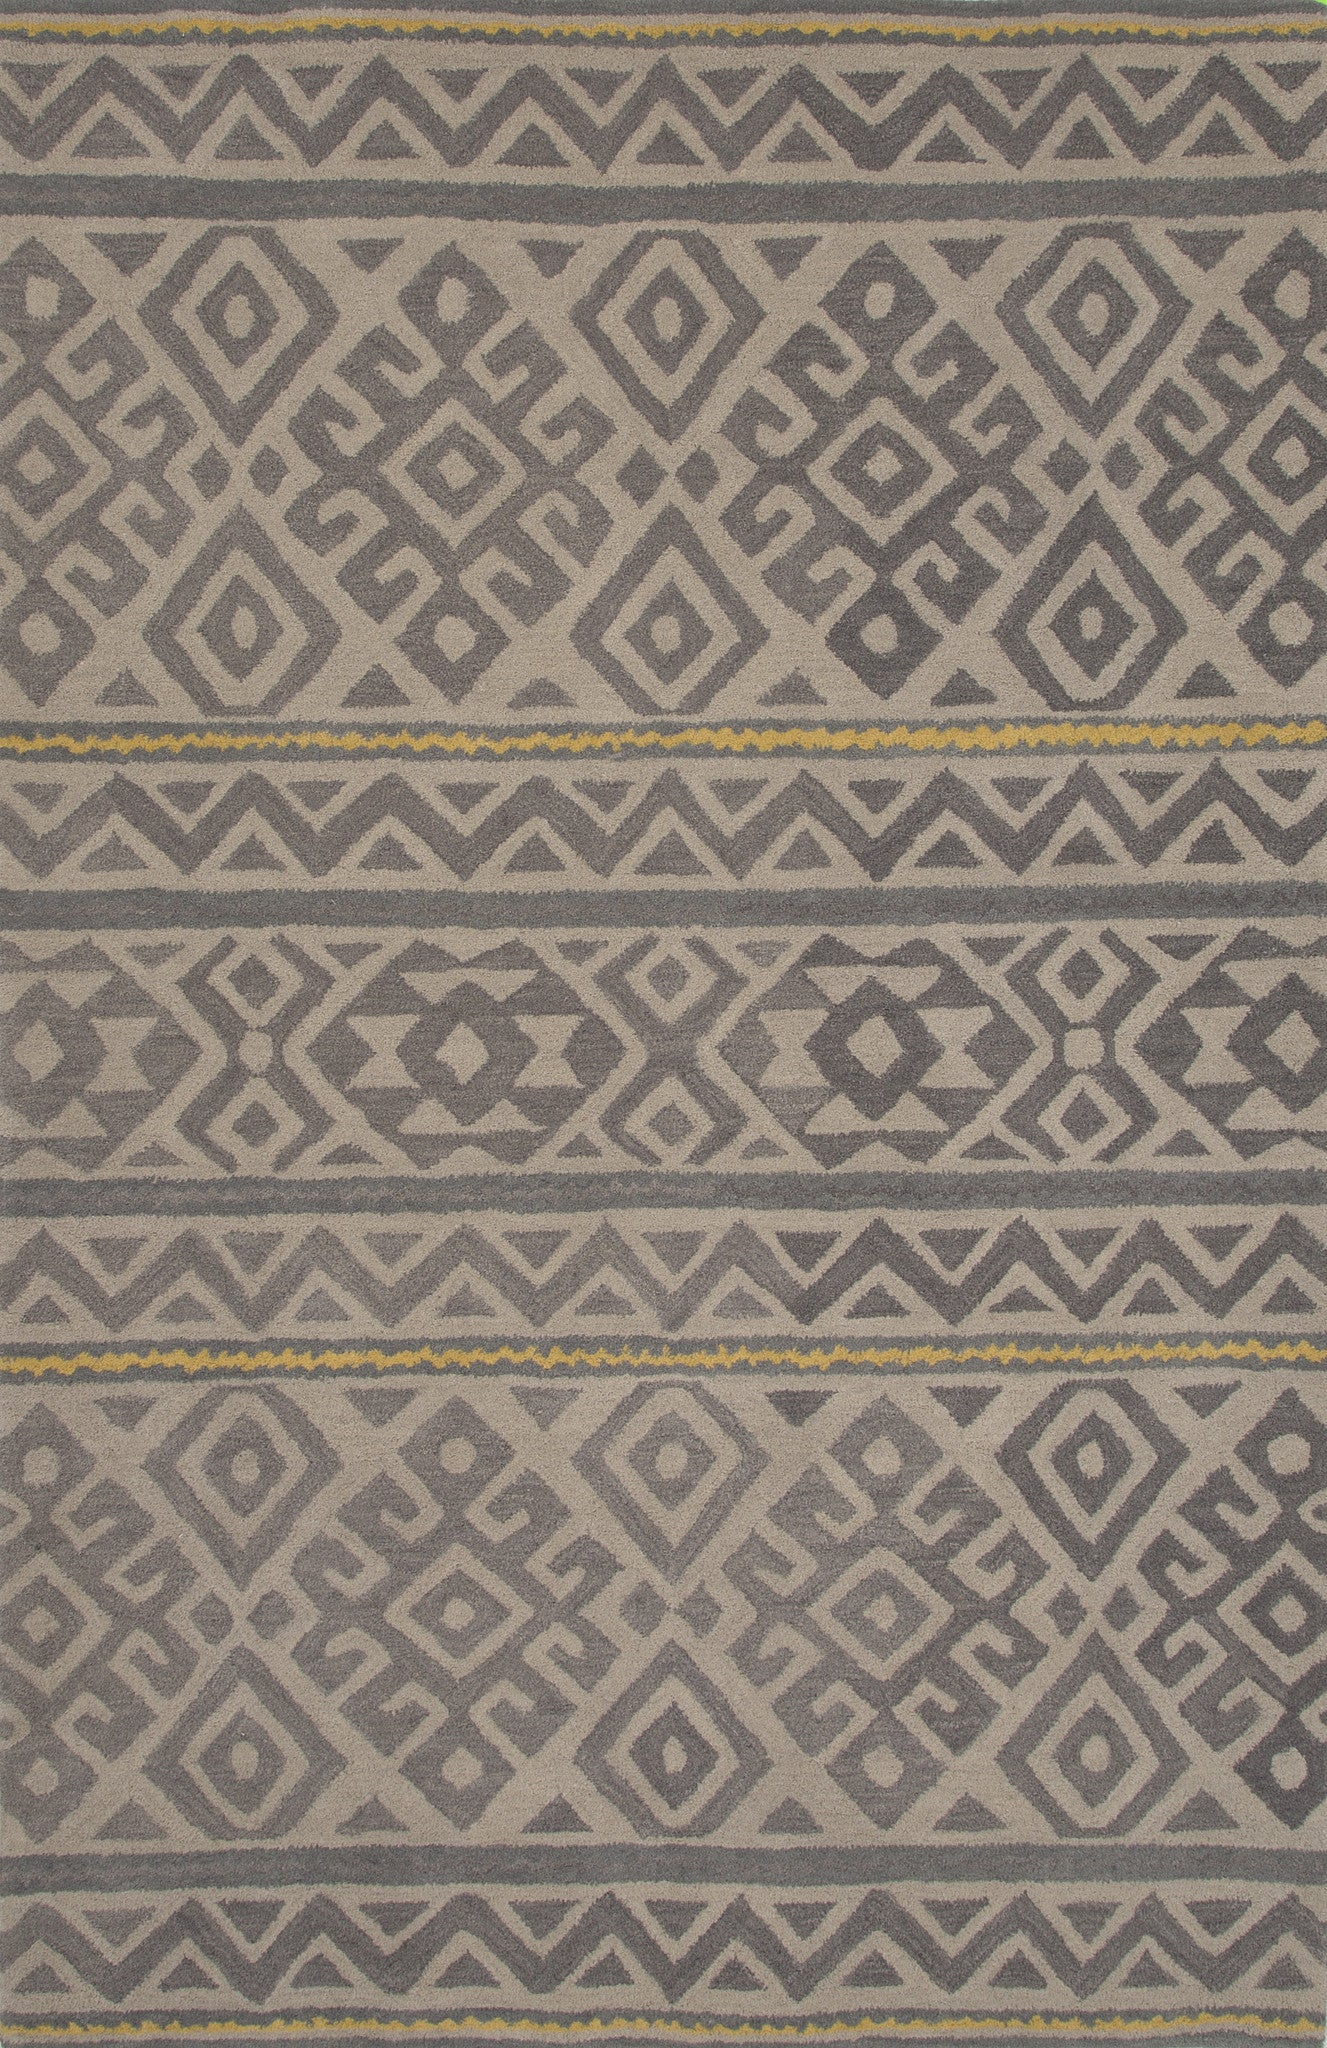 Jaipur rugs modern tribal pattern gray wool area rug mmt14 for Modern wool area rugs